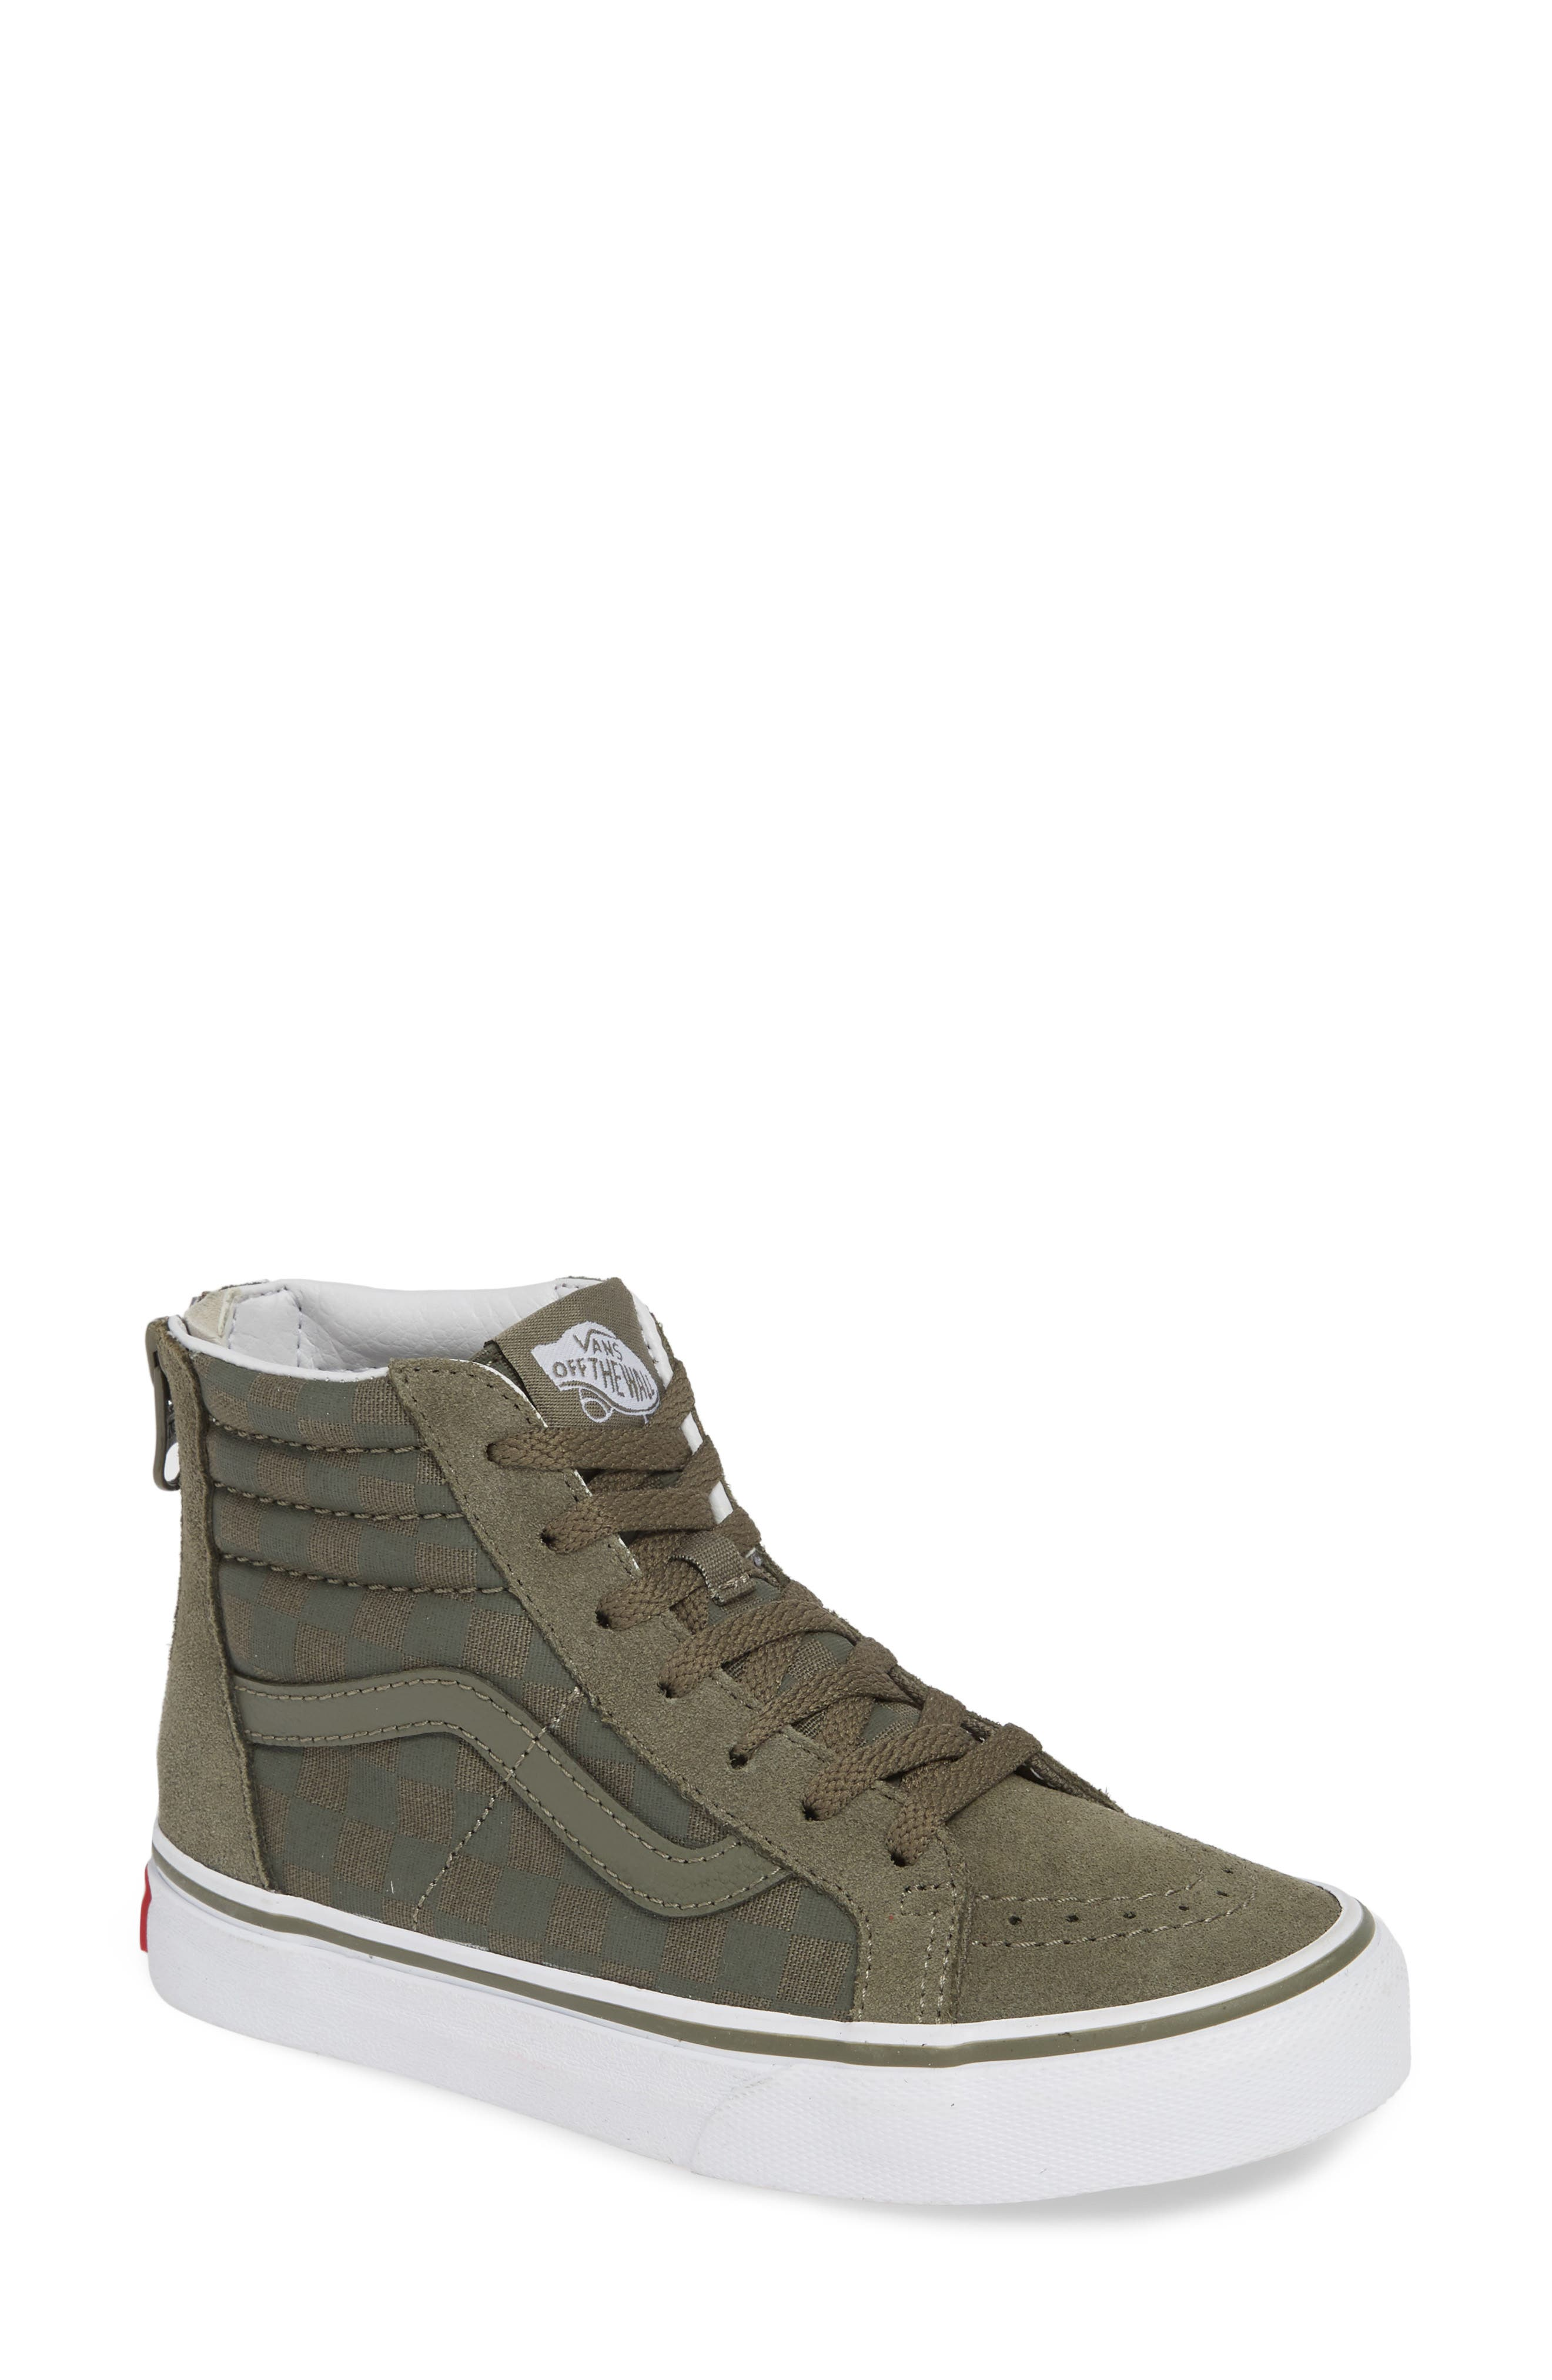 'Sk8-Hi' Sneaker,                             Main thumbnail 1, color,                             DUSTY OLIVE LEATHER